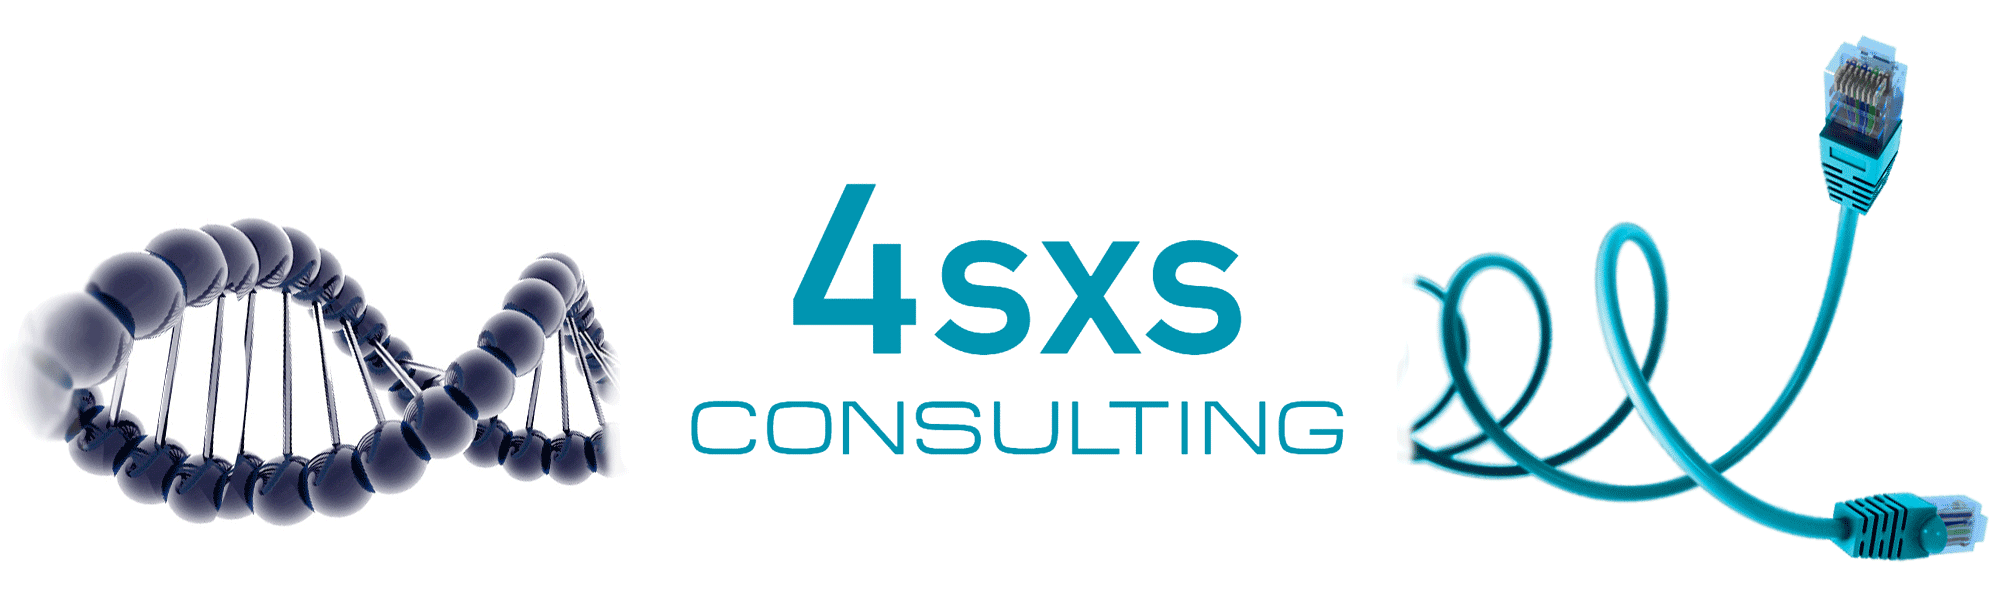 4sxs Consulting